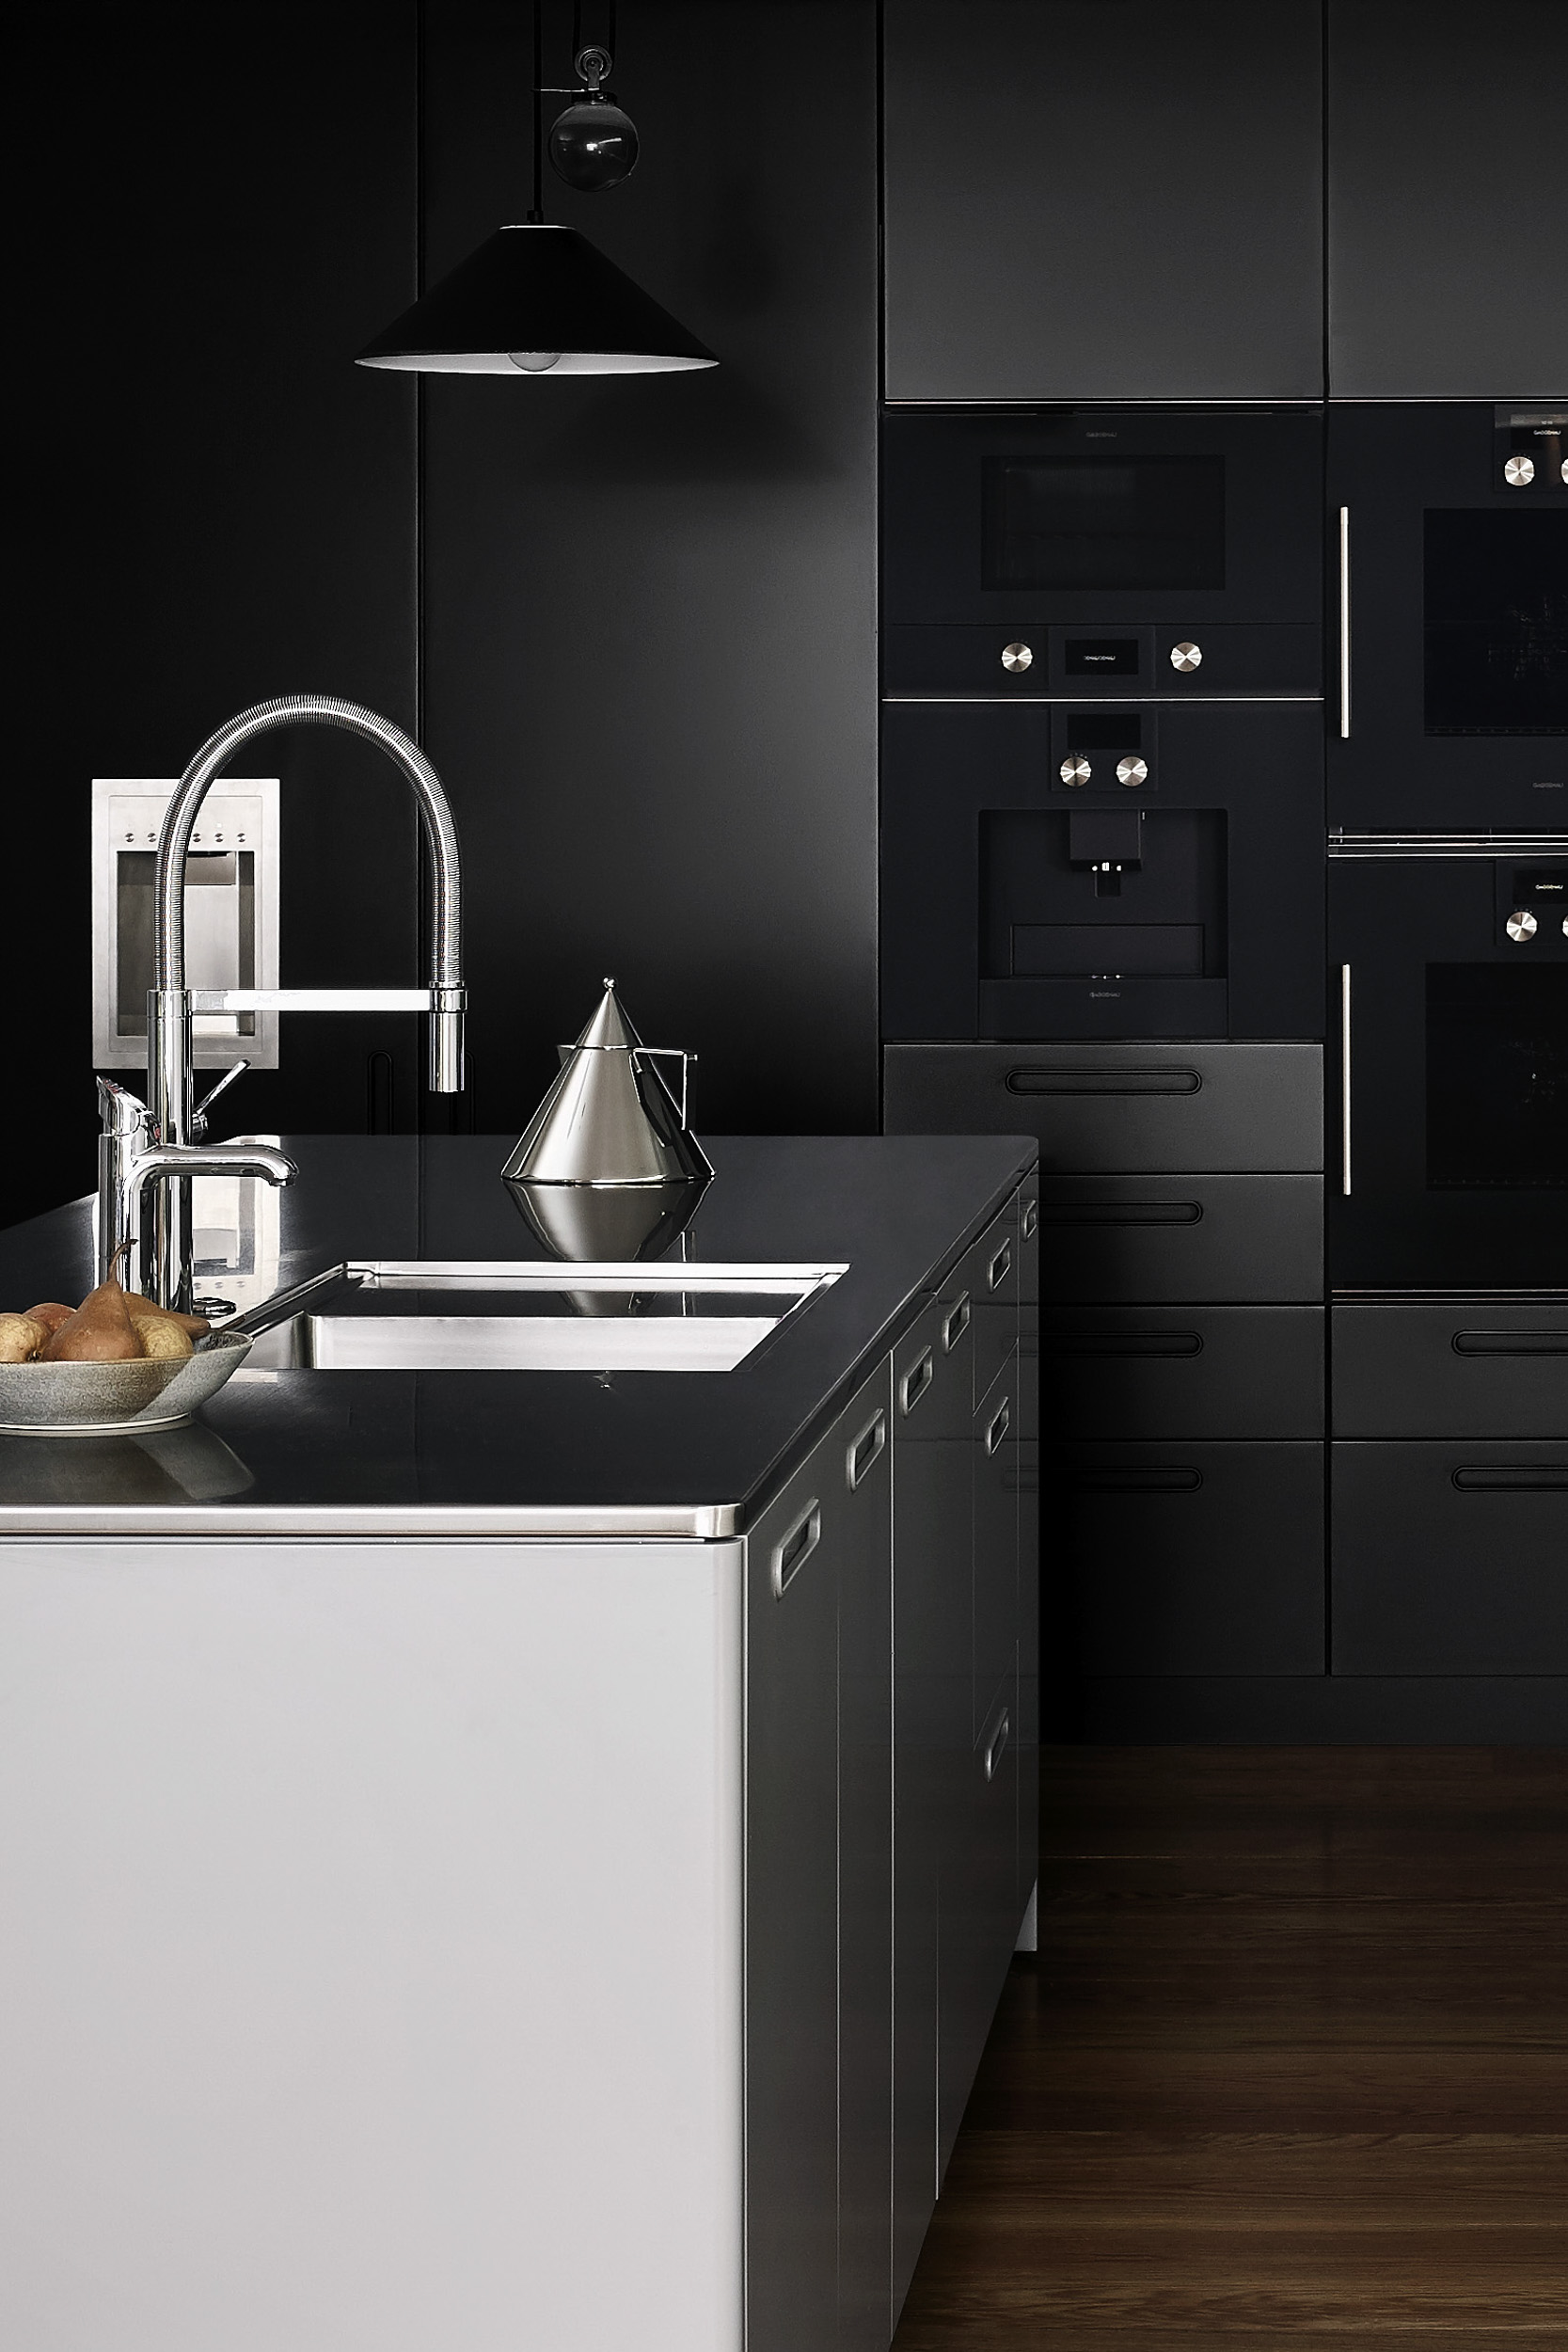 Tableau Kitchen System by Cantilever for Ross and Pauline Troon, Albert Park (cropped)_2.JPG